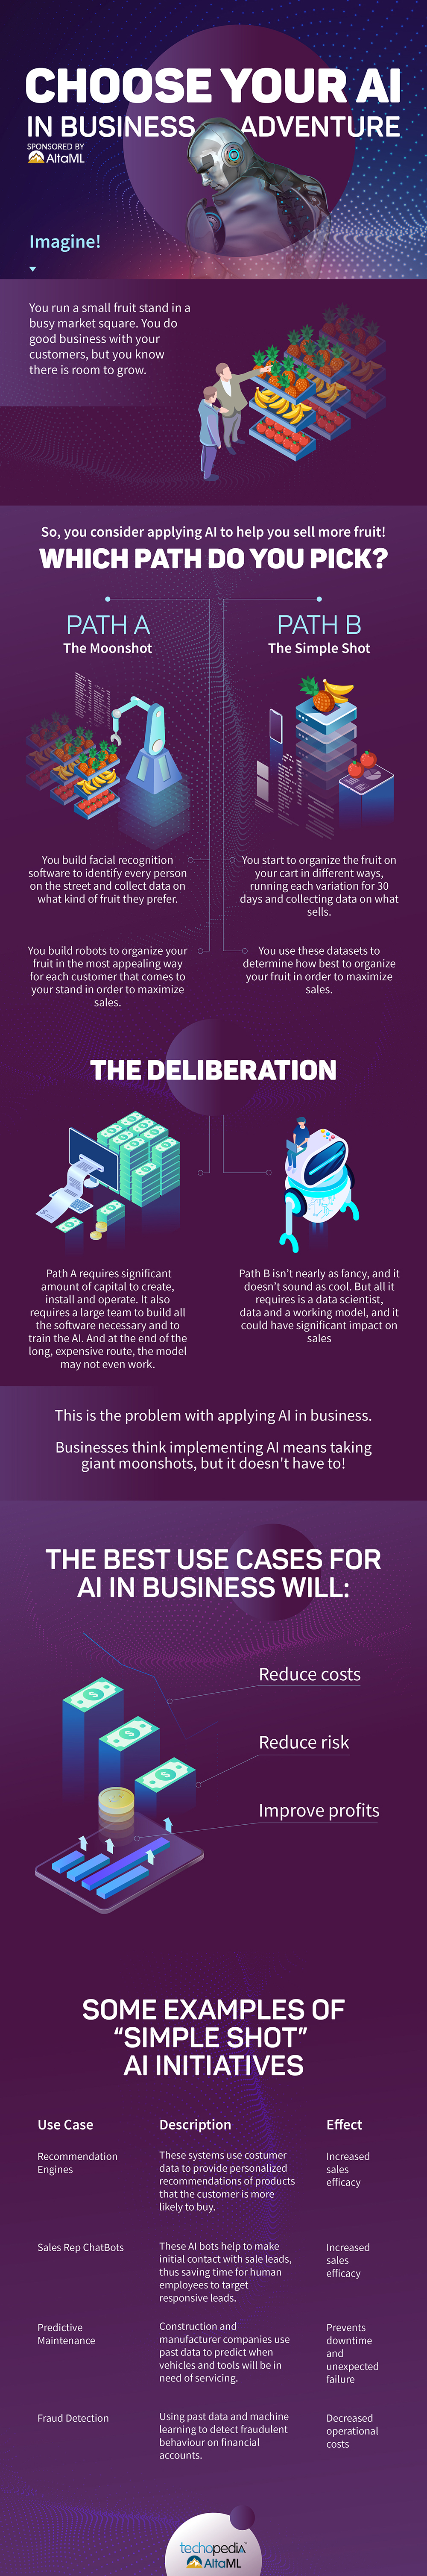 INFOGRAPHIC Choose Your AI in Business Adventure